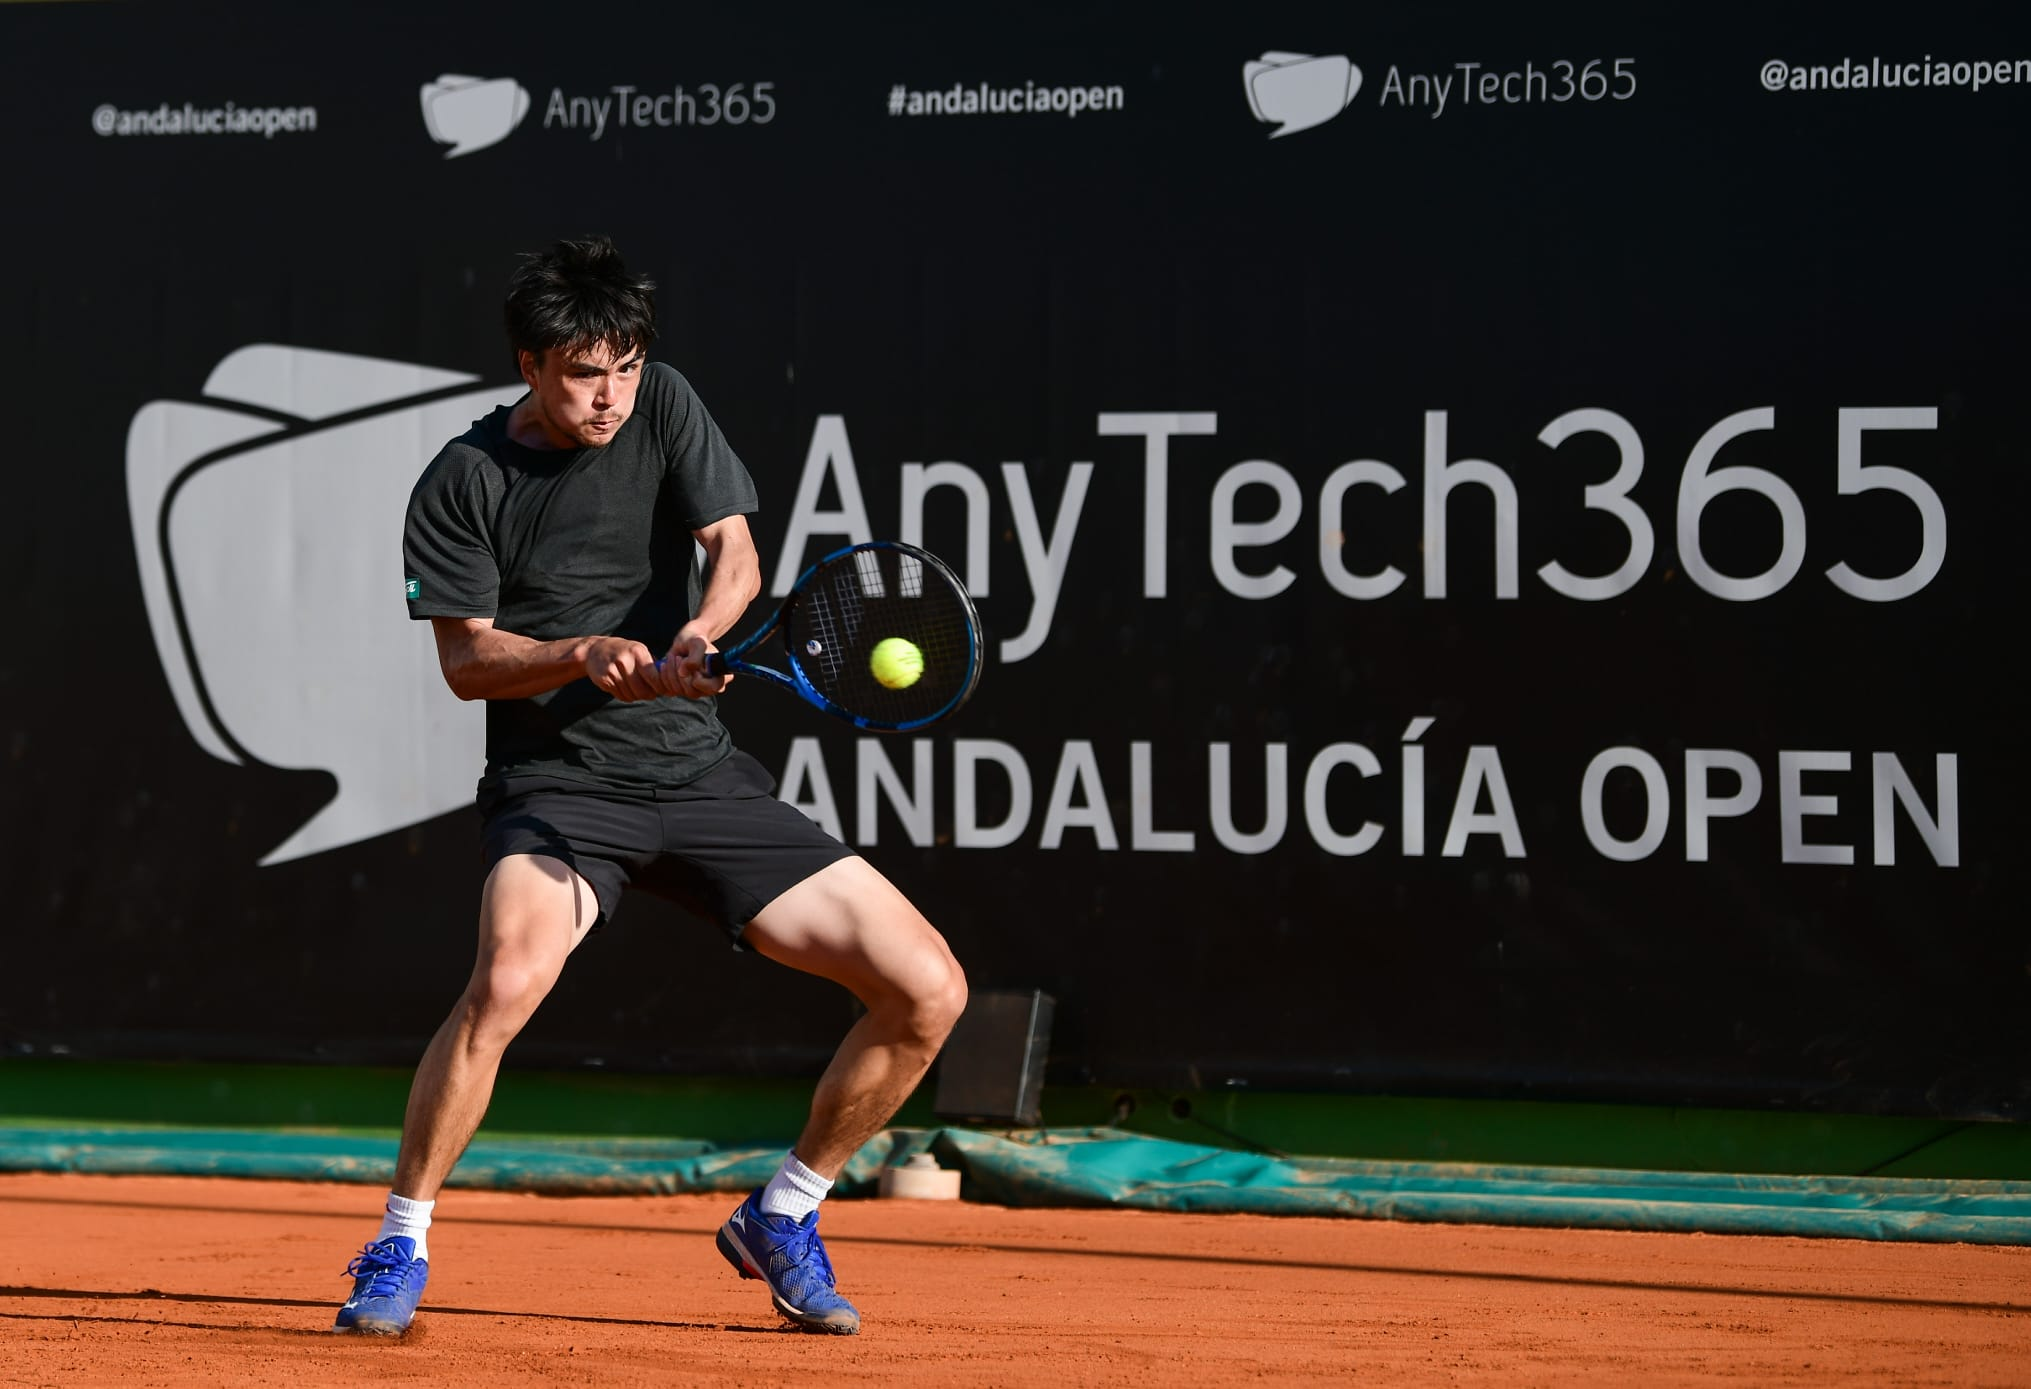 Andalucia Open 2021